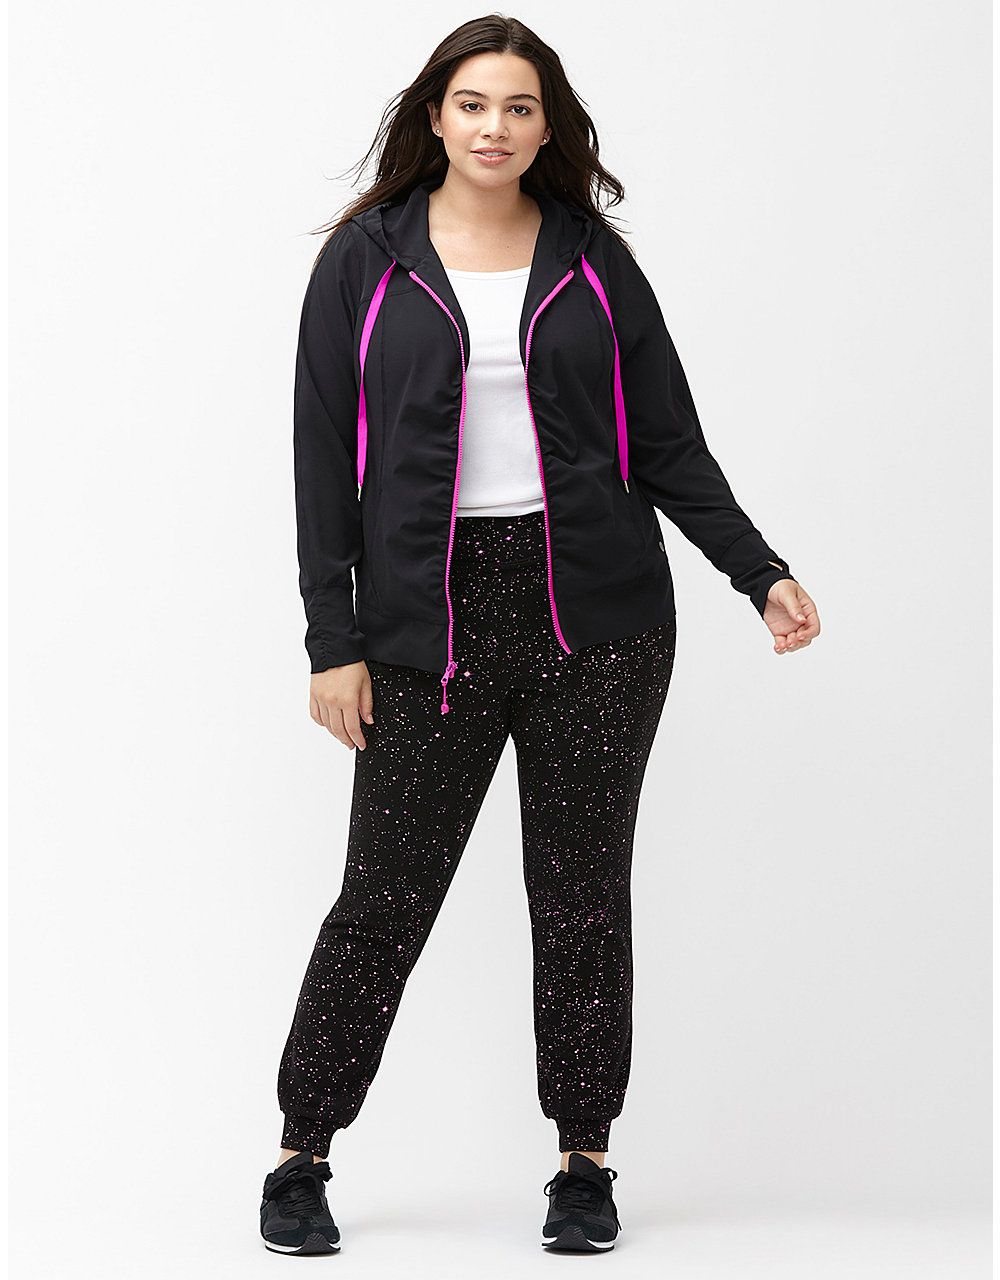 fff64ca73ba01 Performance Stretch ruched active jacket by Livi Active